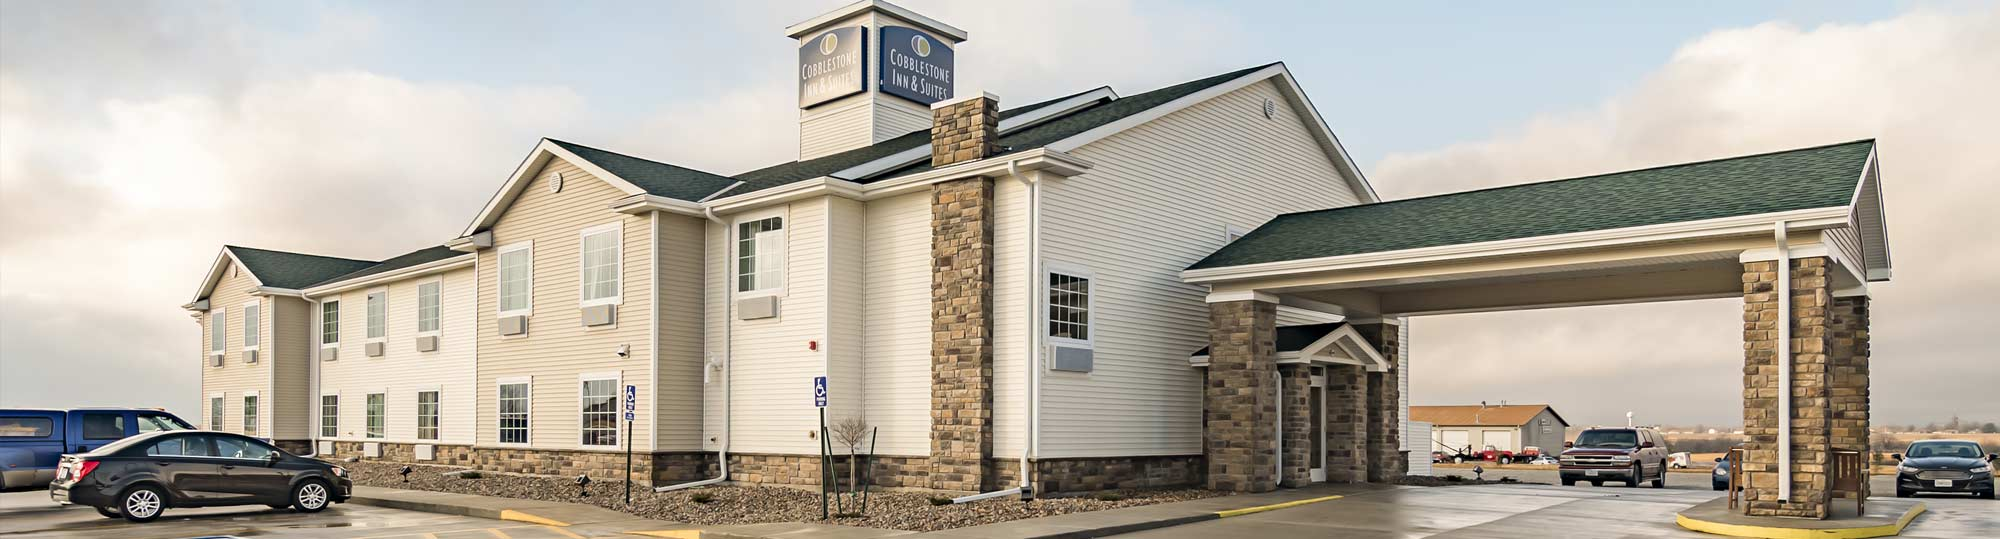 Cobblestone Inn and Suites Lamoni